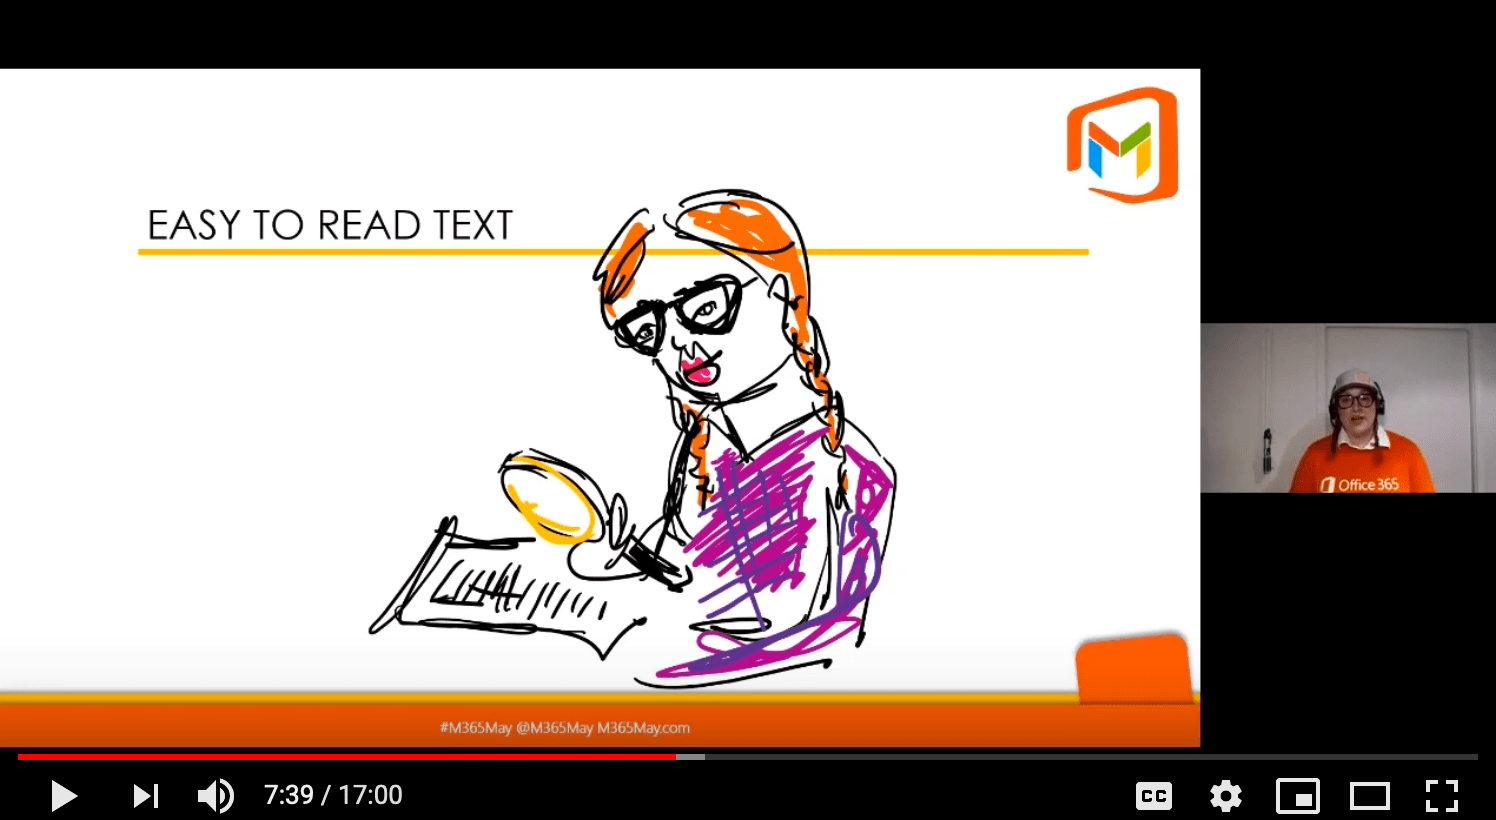 Screenshot. Easy to read text. Pigtailed girl reading with magnifying glass.